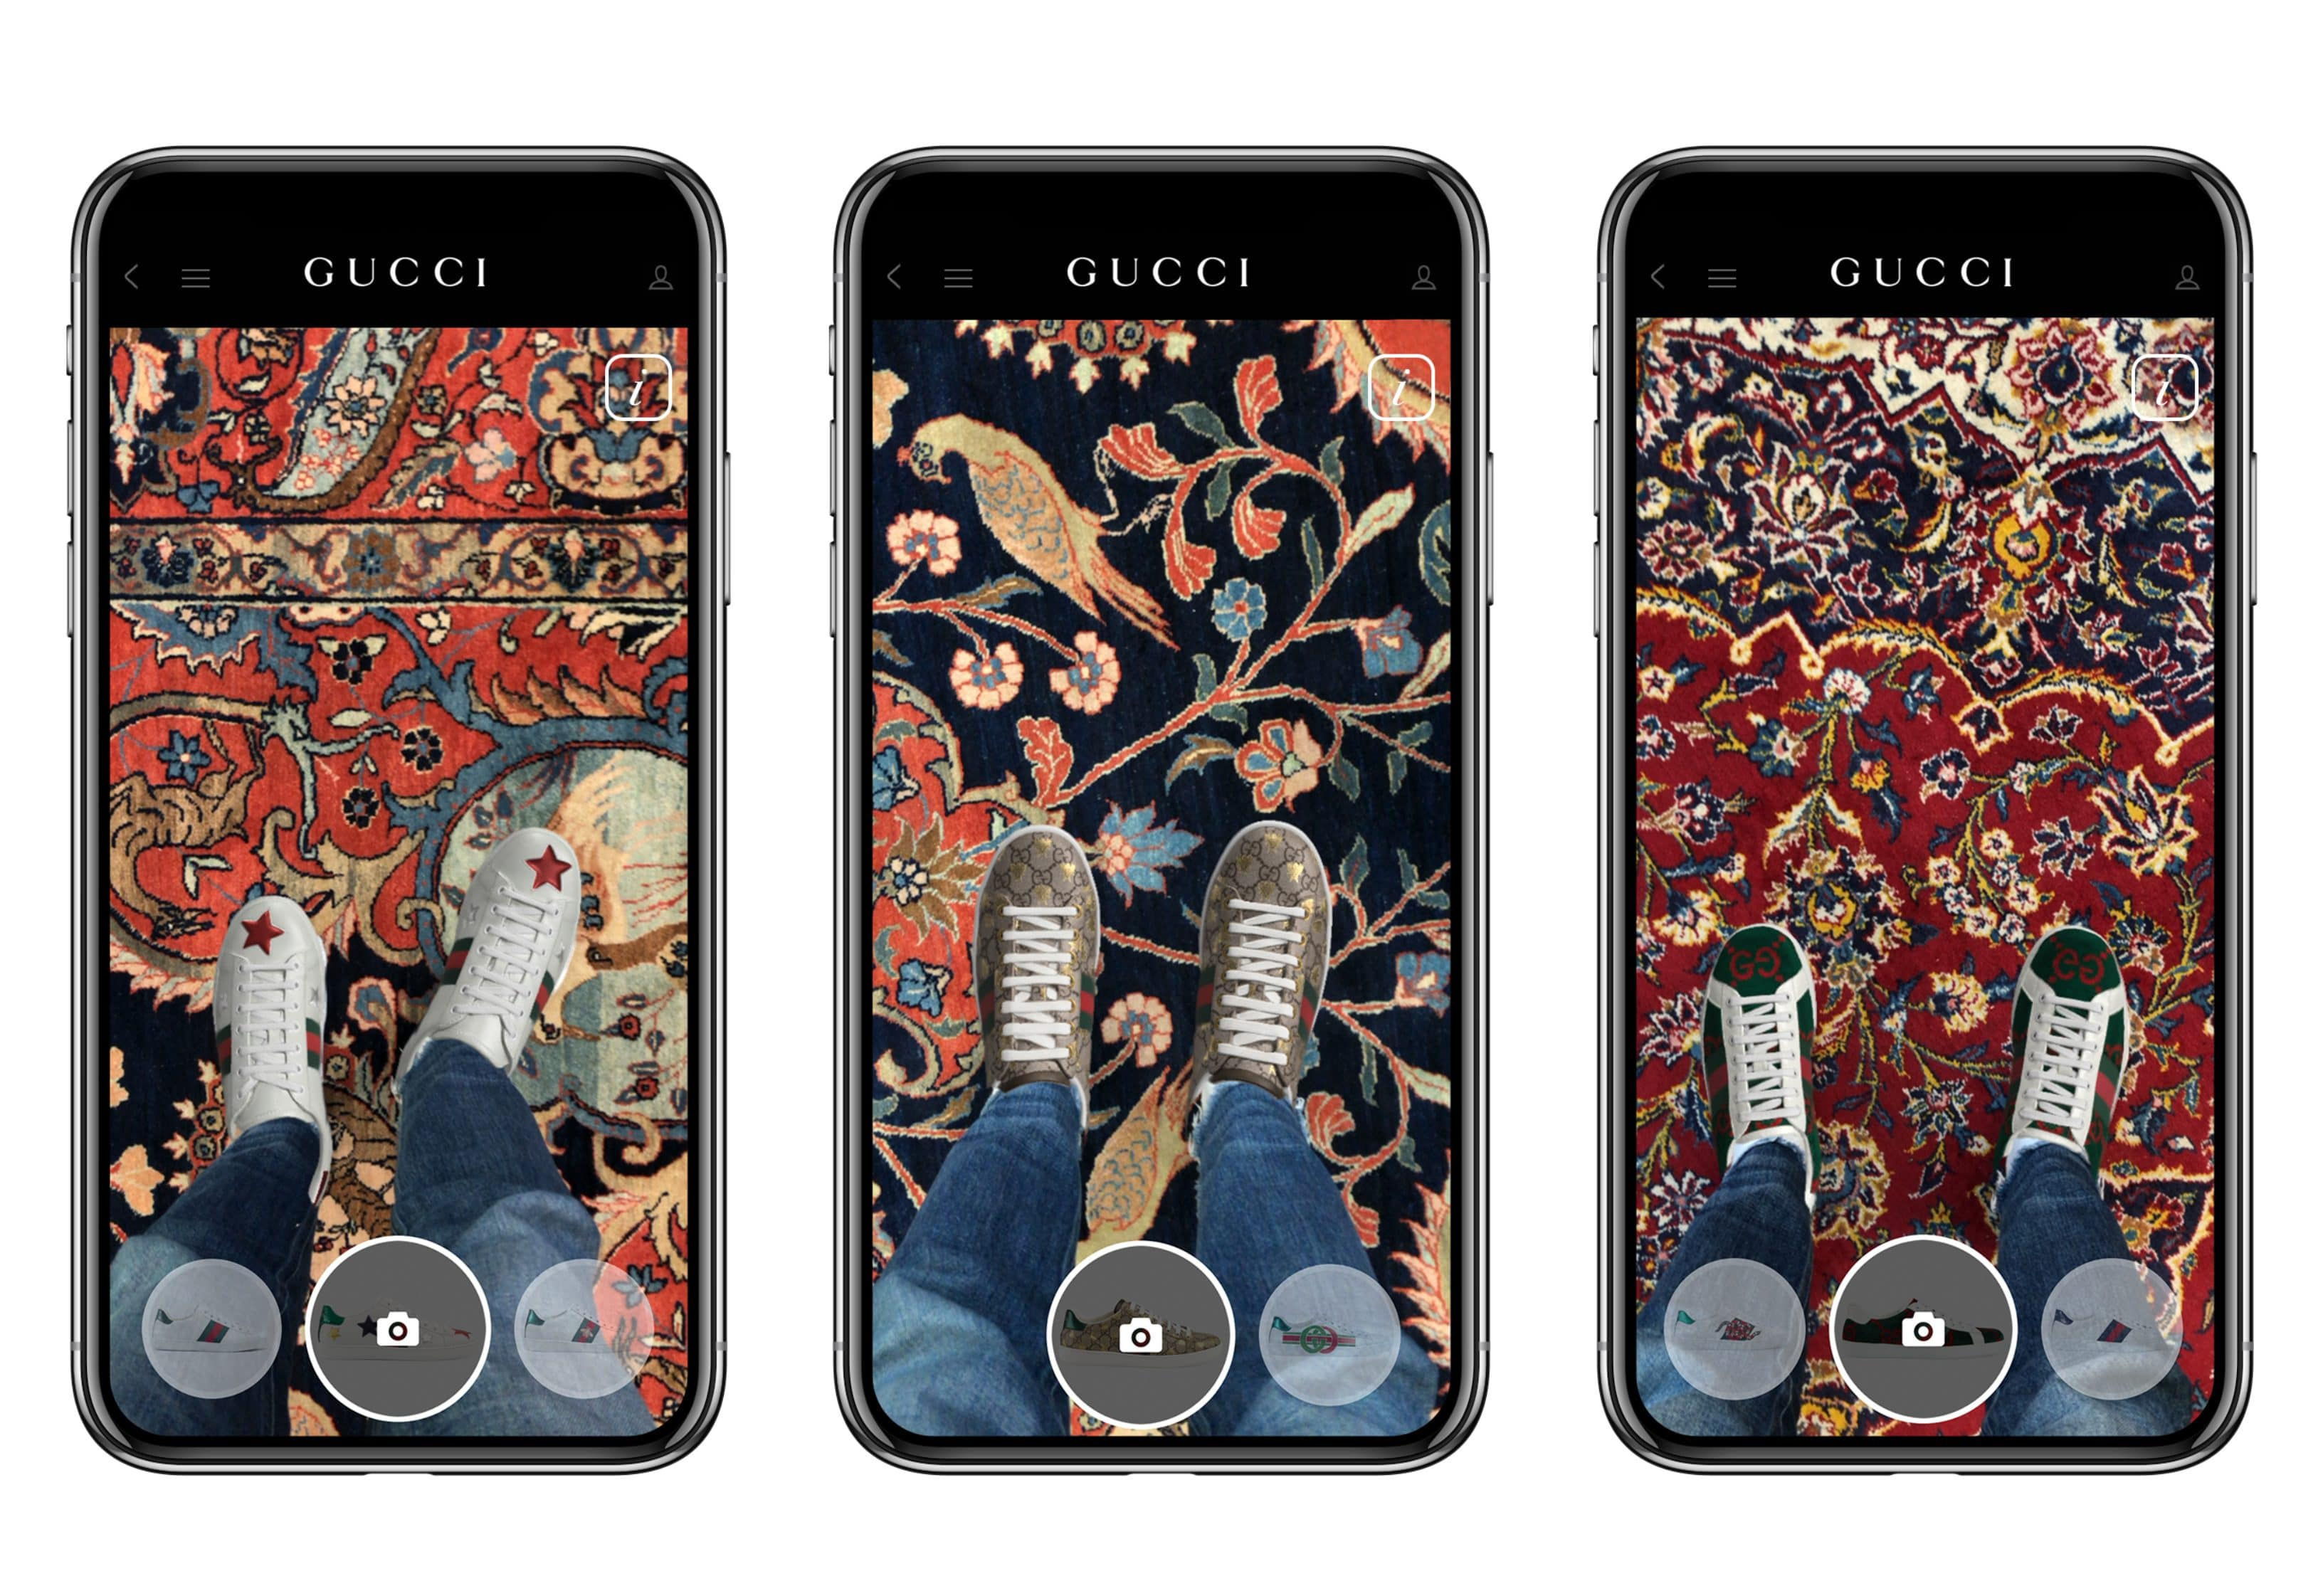 Gucci breaks fashion frontiers by leading the way into AR technology for shoes